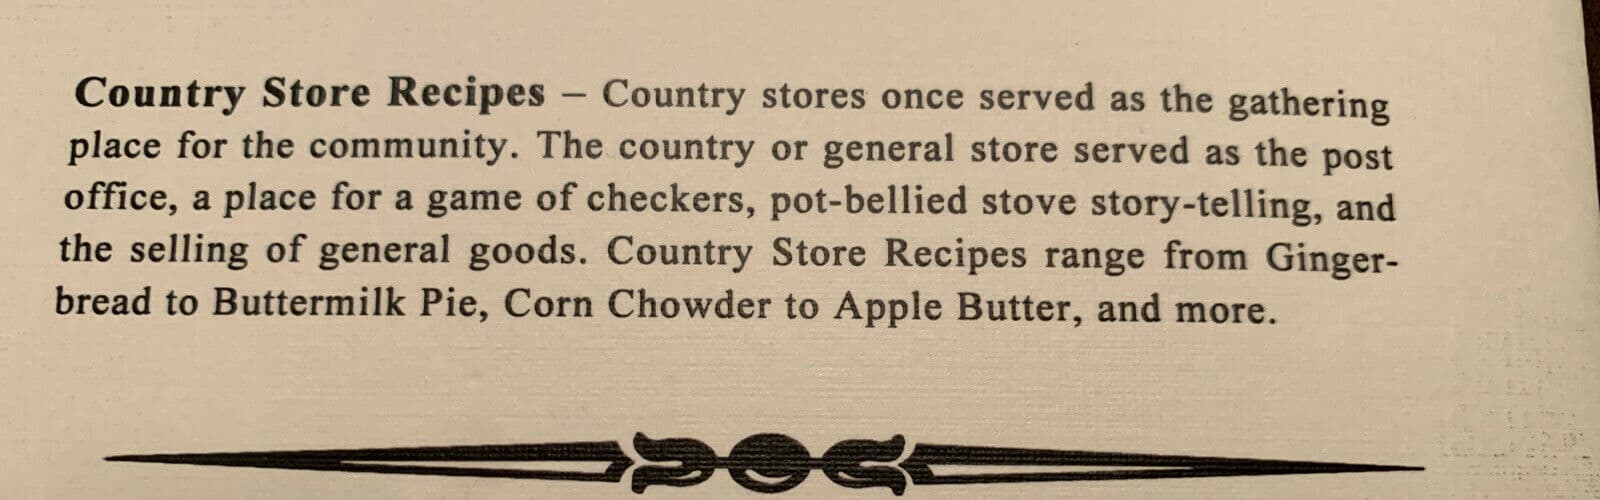 Country Store Recipes